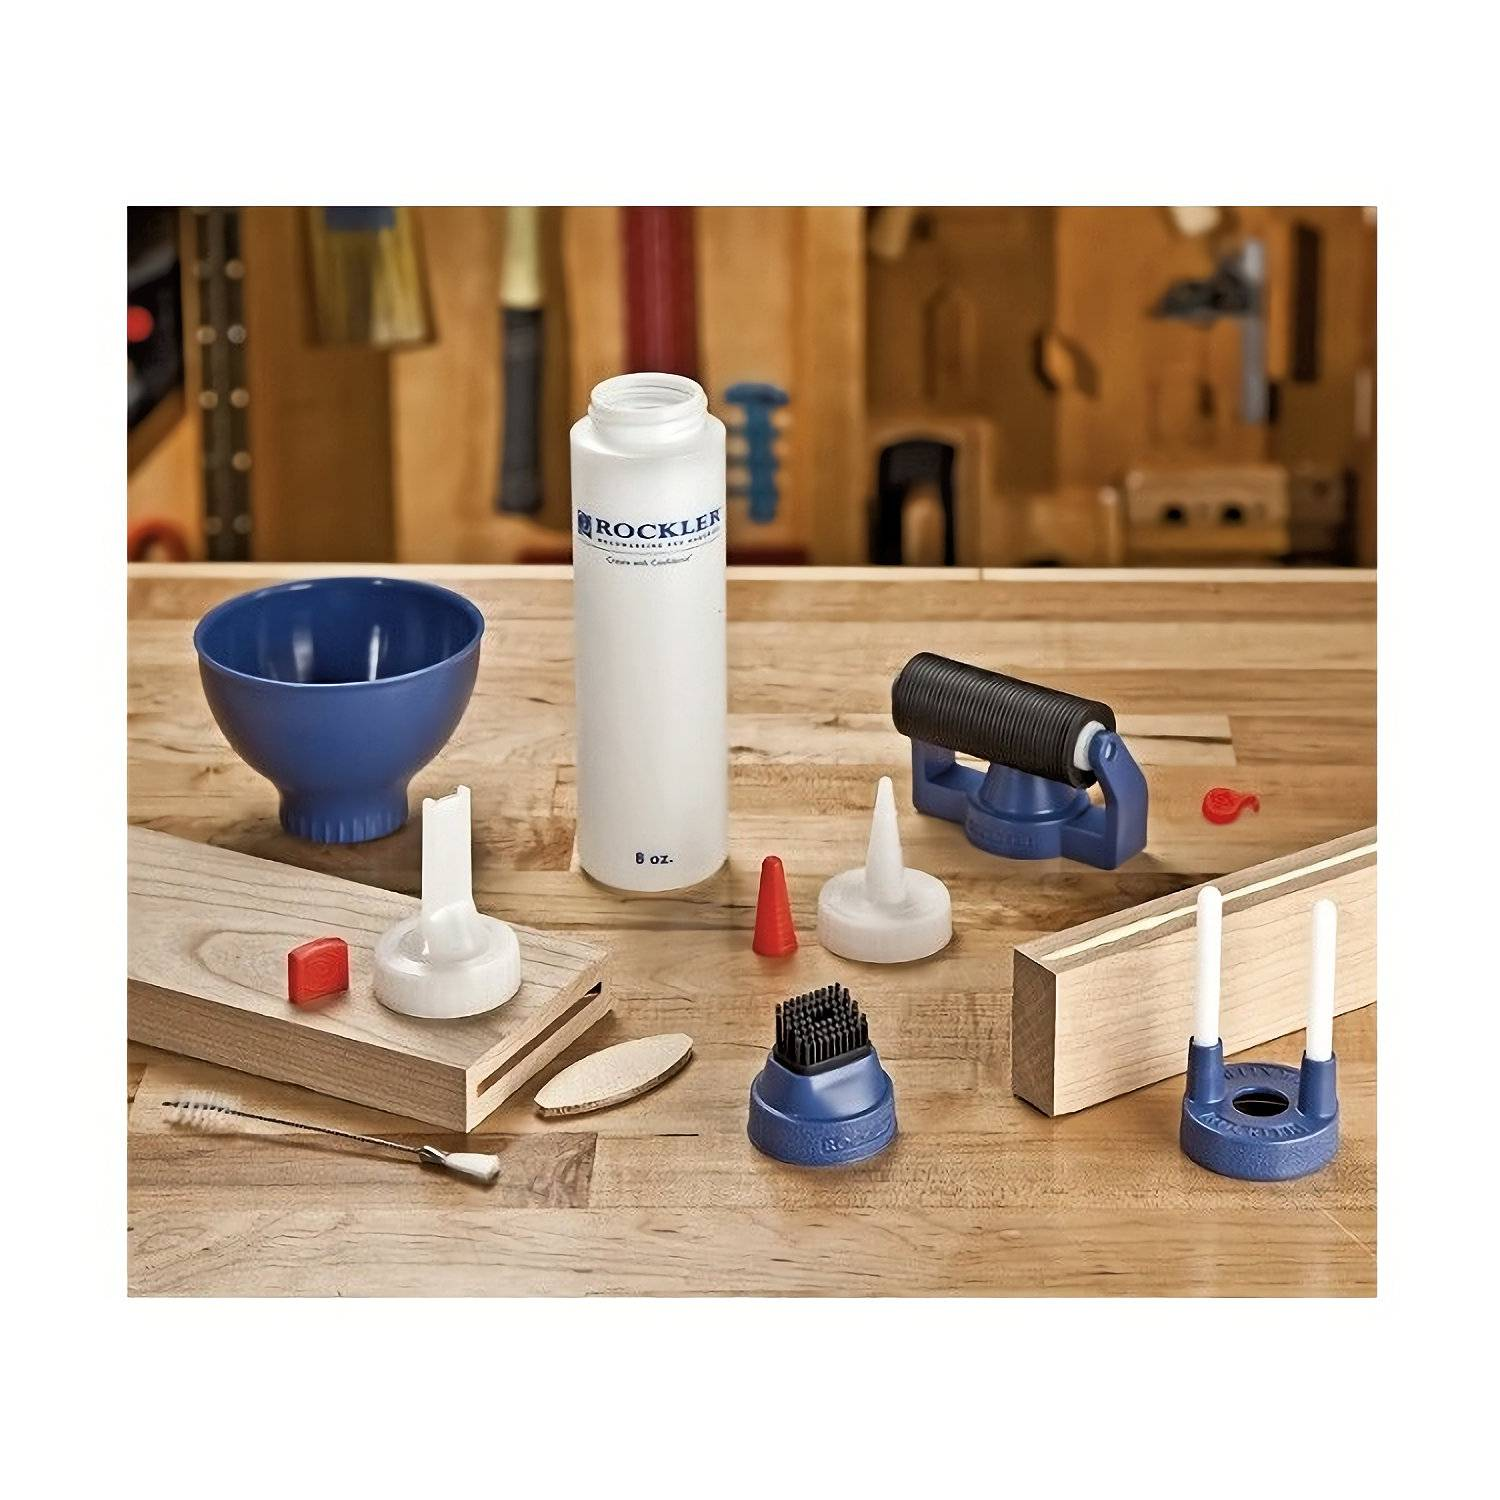 Rockler-glue-applicator-set.jpg